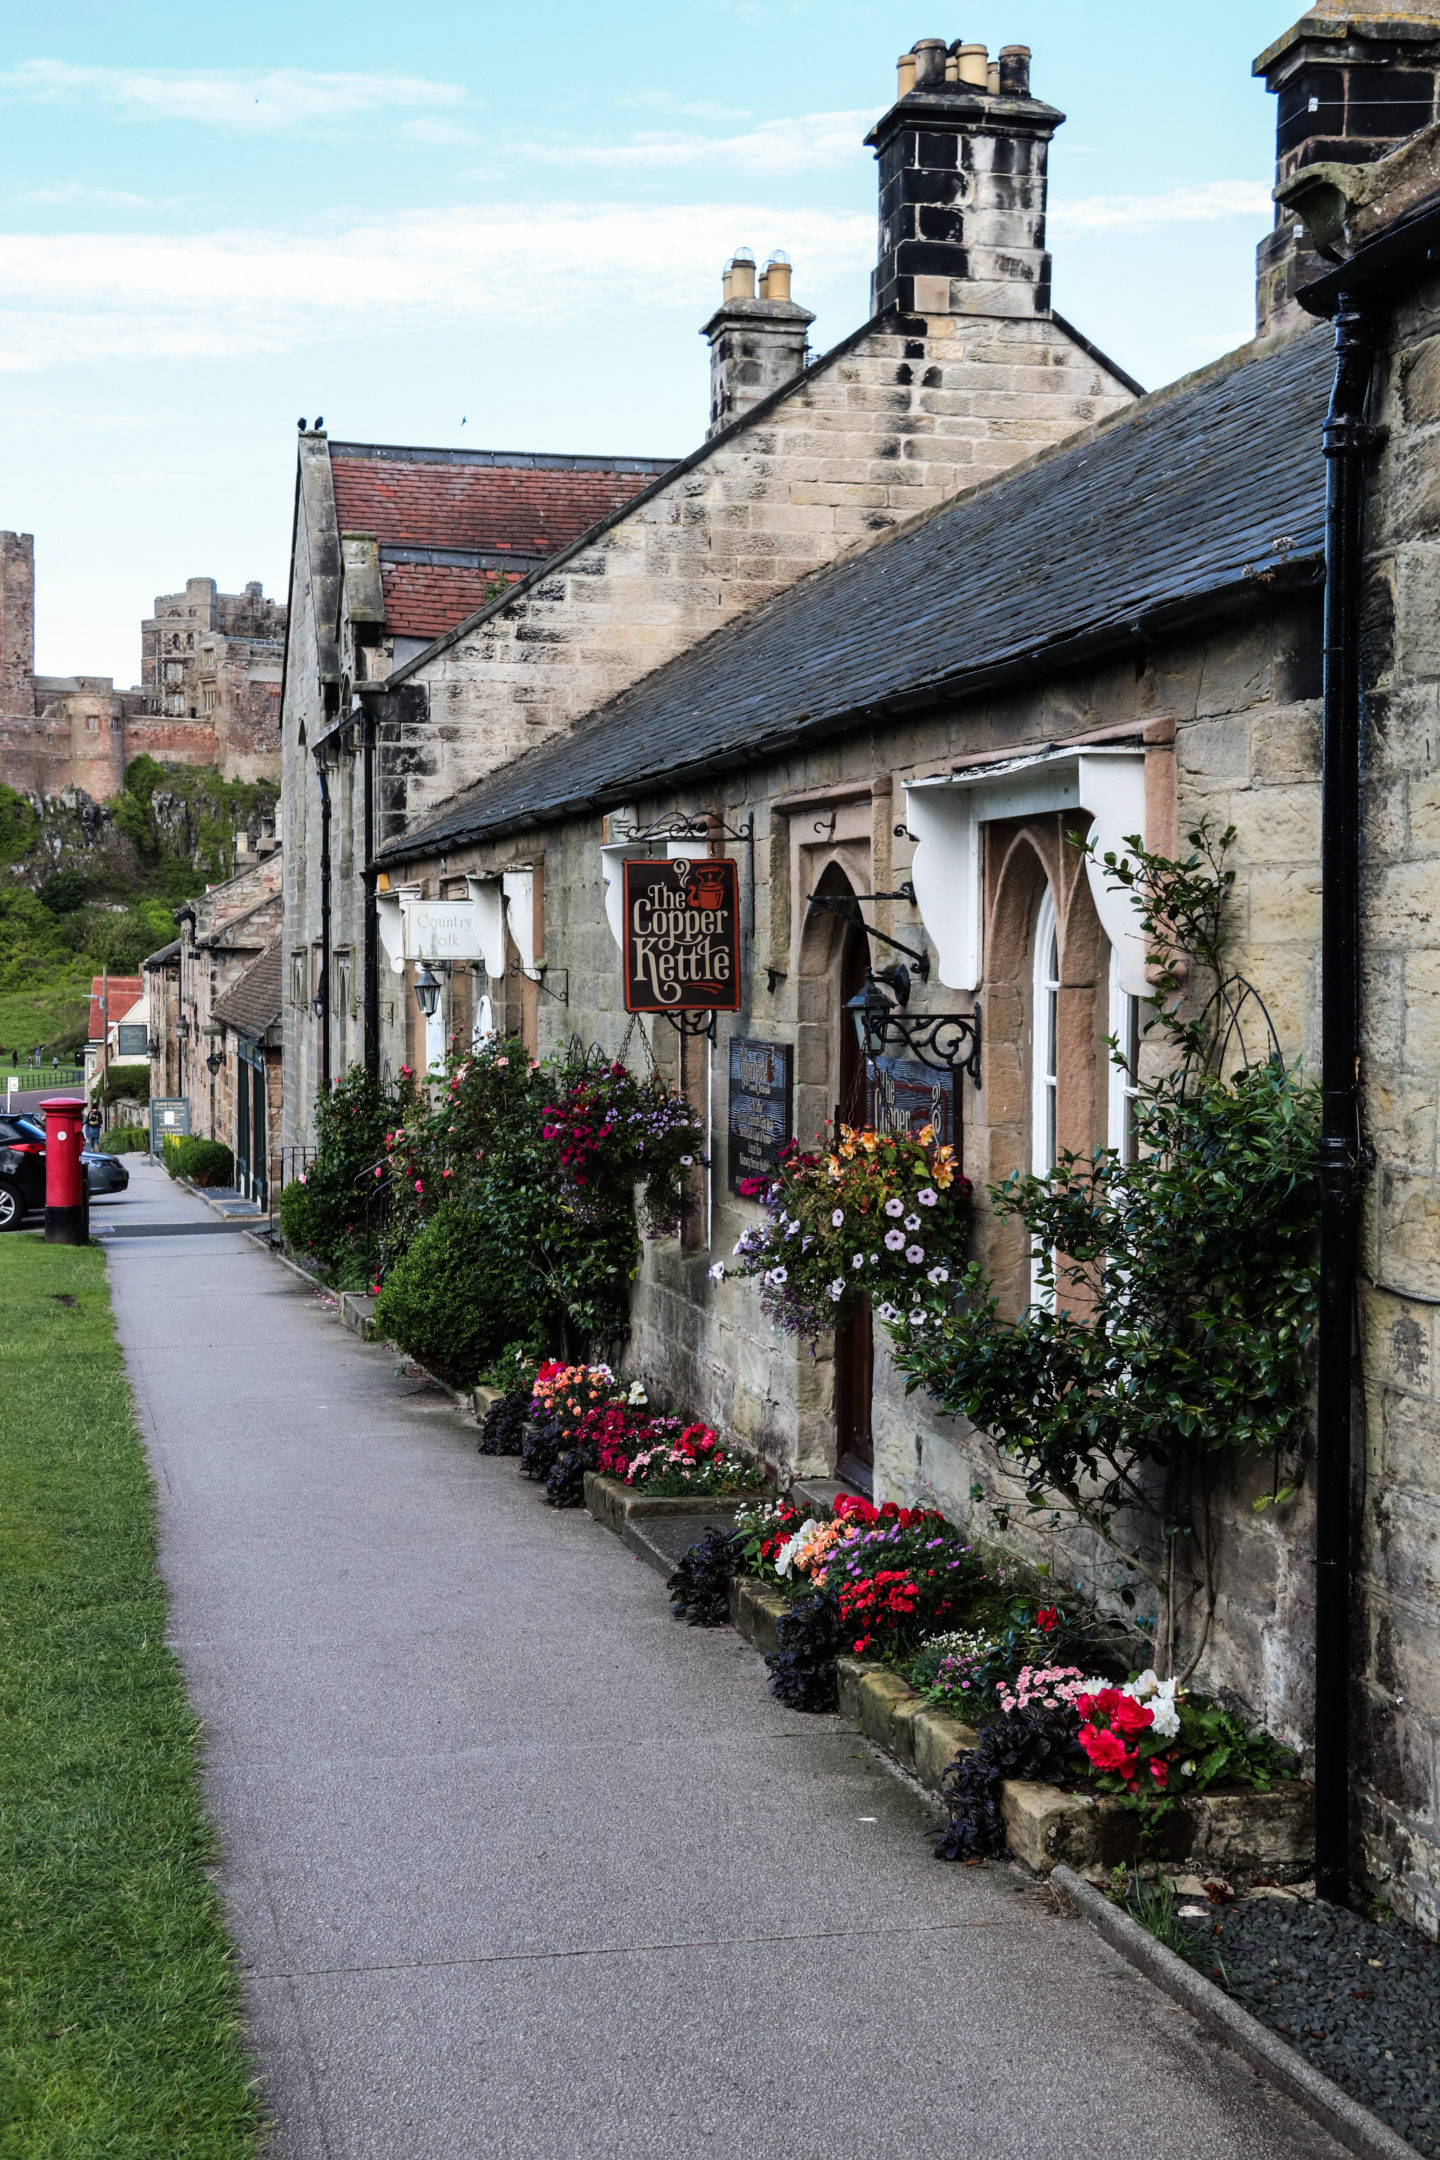 Picture perfect shops in Bamburgh Village - a cafe called the Copper Kettle with Bamburgh Castle in the background.